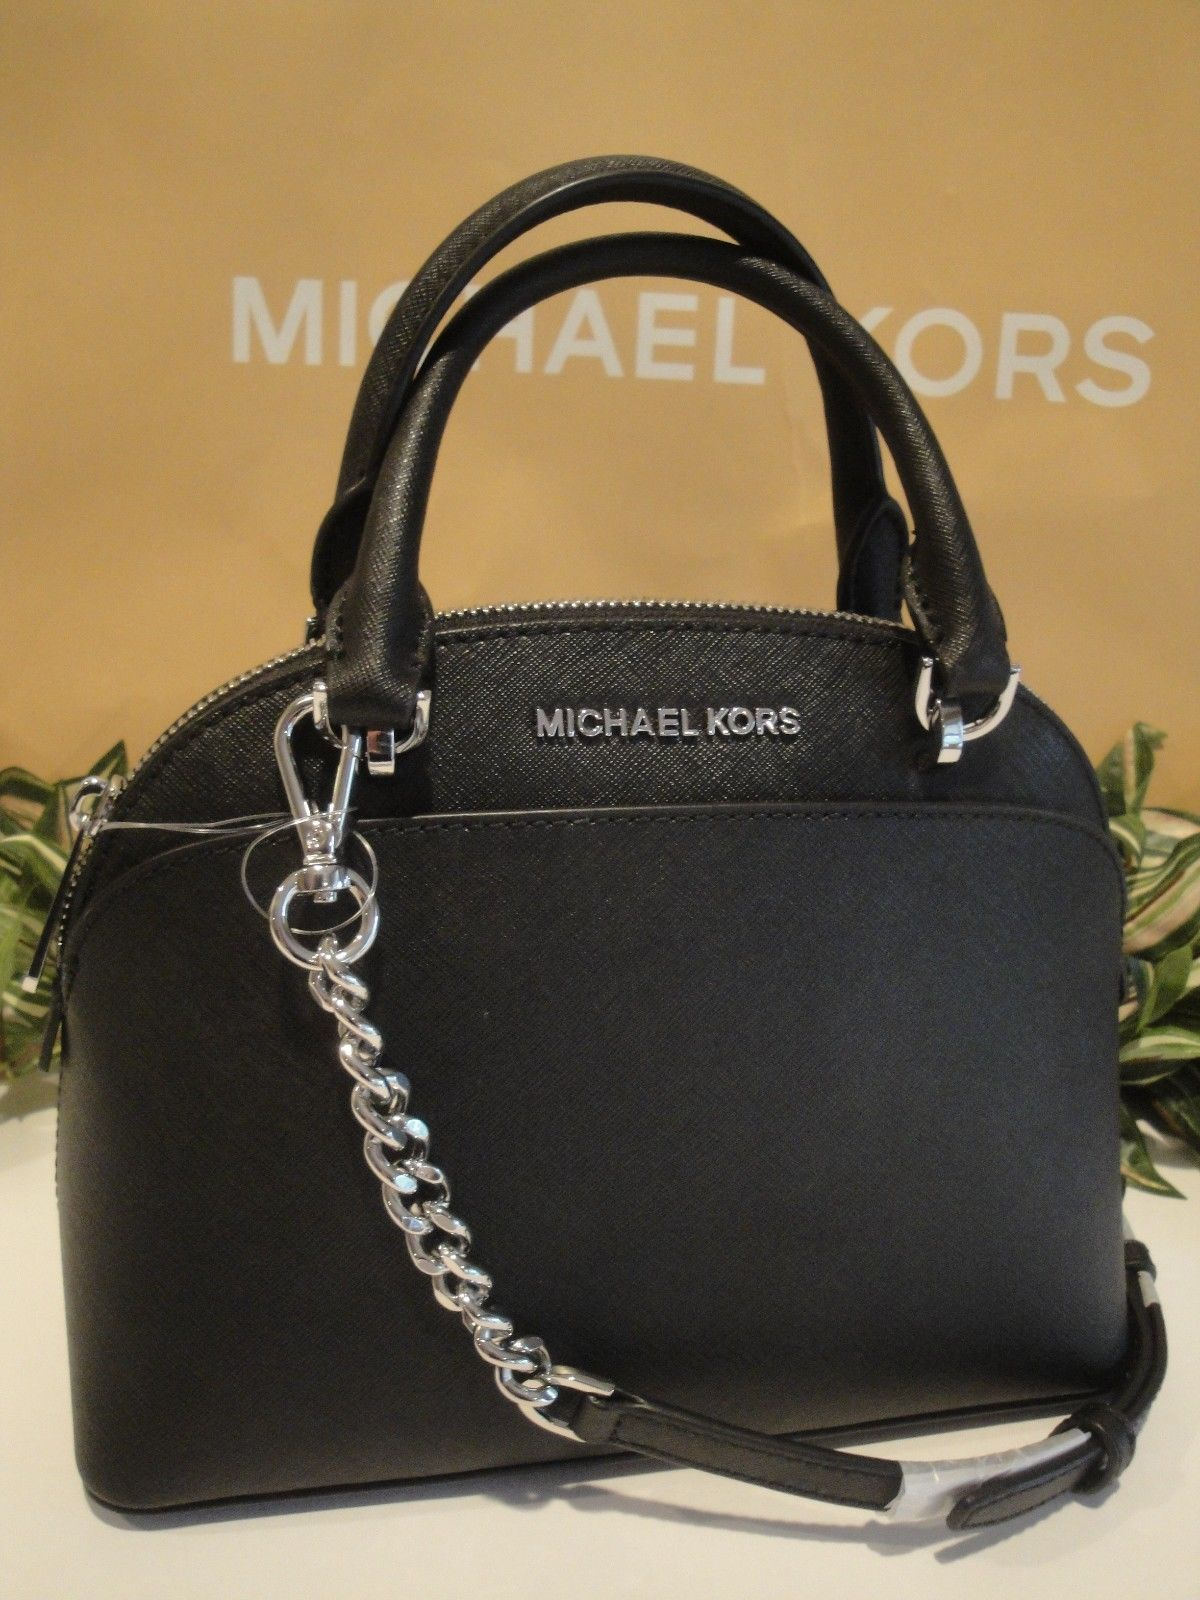 96b30e9fd544 MICHAEL KORS EMMY SMALL DOME SATCHEL CROSSBODY MK BAG LEATHER BLACK SILVER  $298